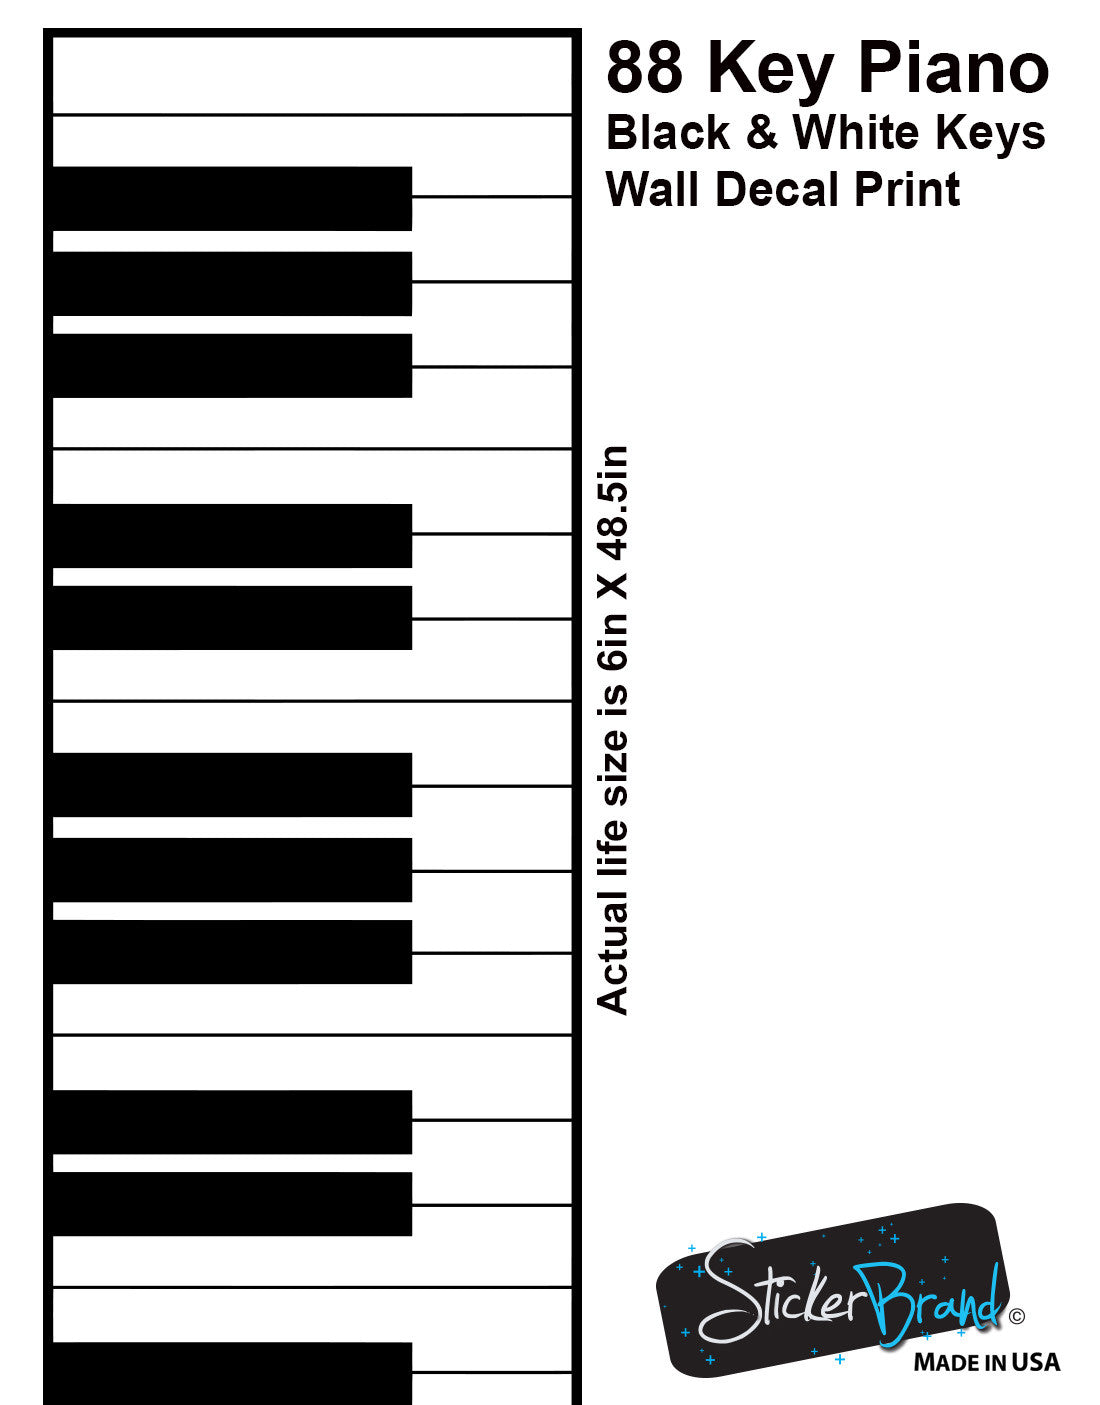 graphic relating to Piano Key Stickers Printable identified as Piano Keys (88 keys) Black White Impression Wall Decal